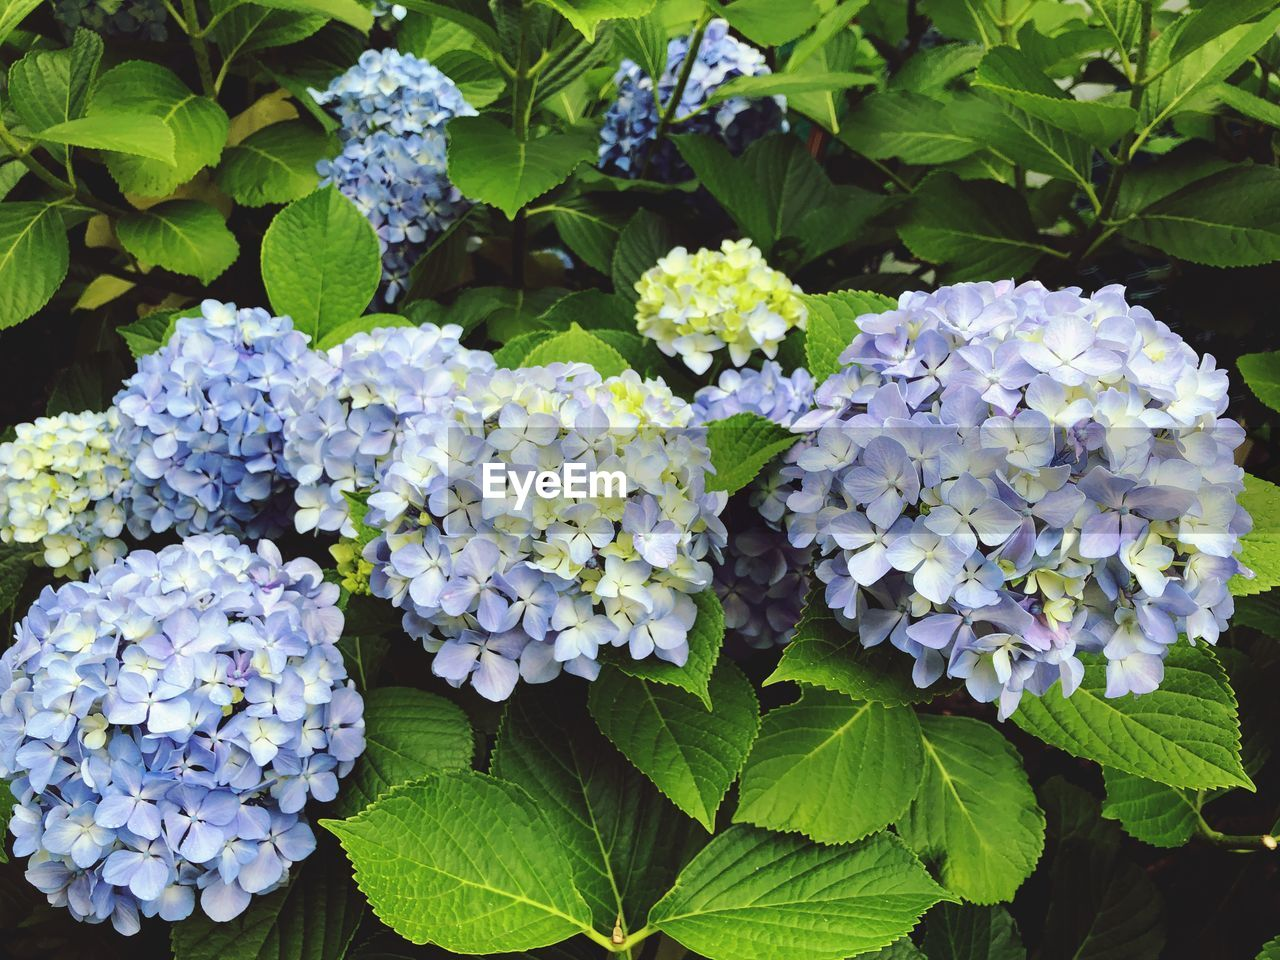 flowering plant, leaf, beauty in nature, flower, plant part, vulnerability, growth, fragility, plant, hydrangea, freshness, petal, nature, inflorescence, flower head, close-up, day, green color, no people, springtime, bunch of flowers, lilac, outdoors, purple, lantana